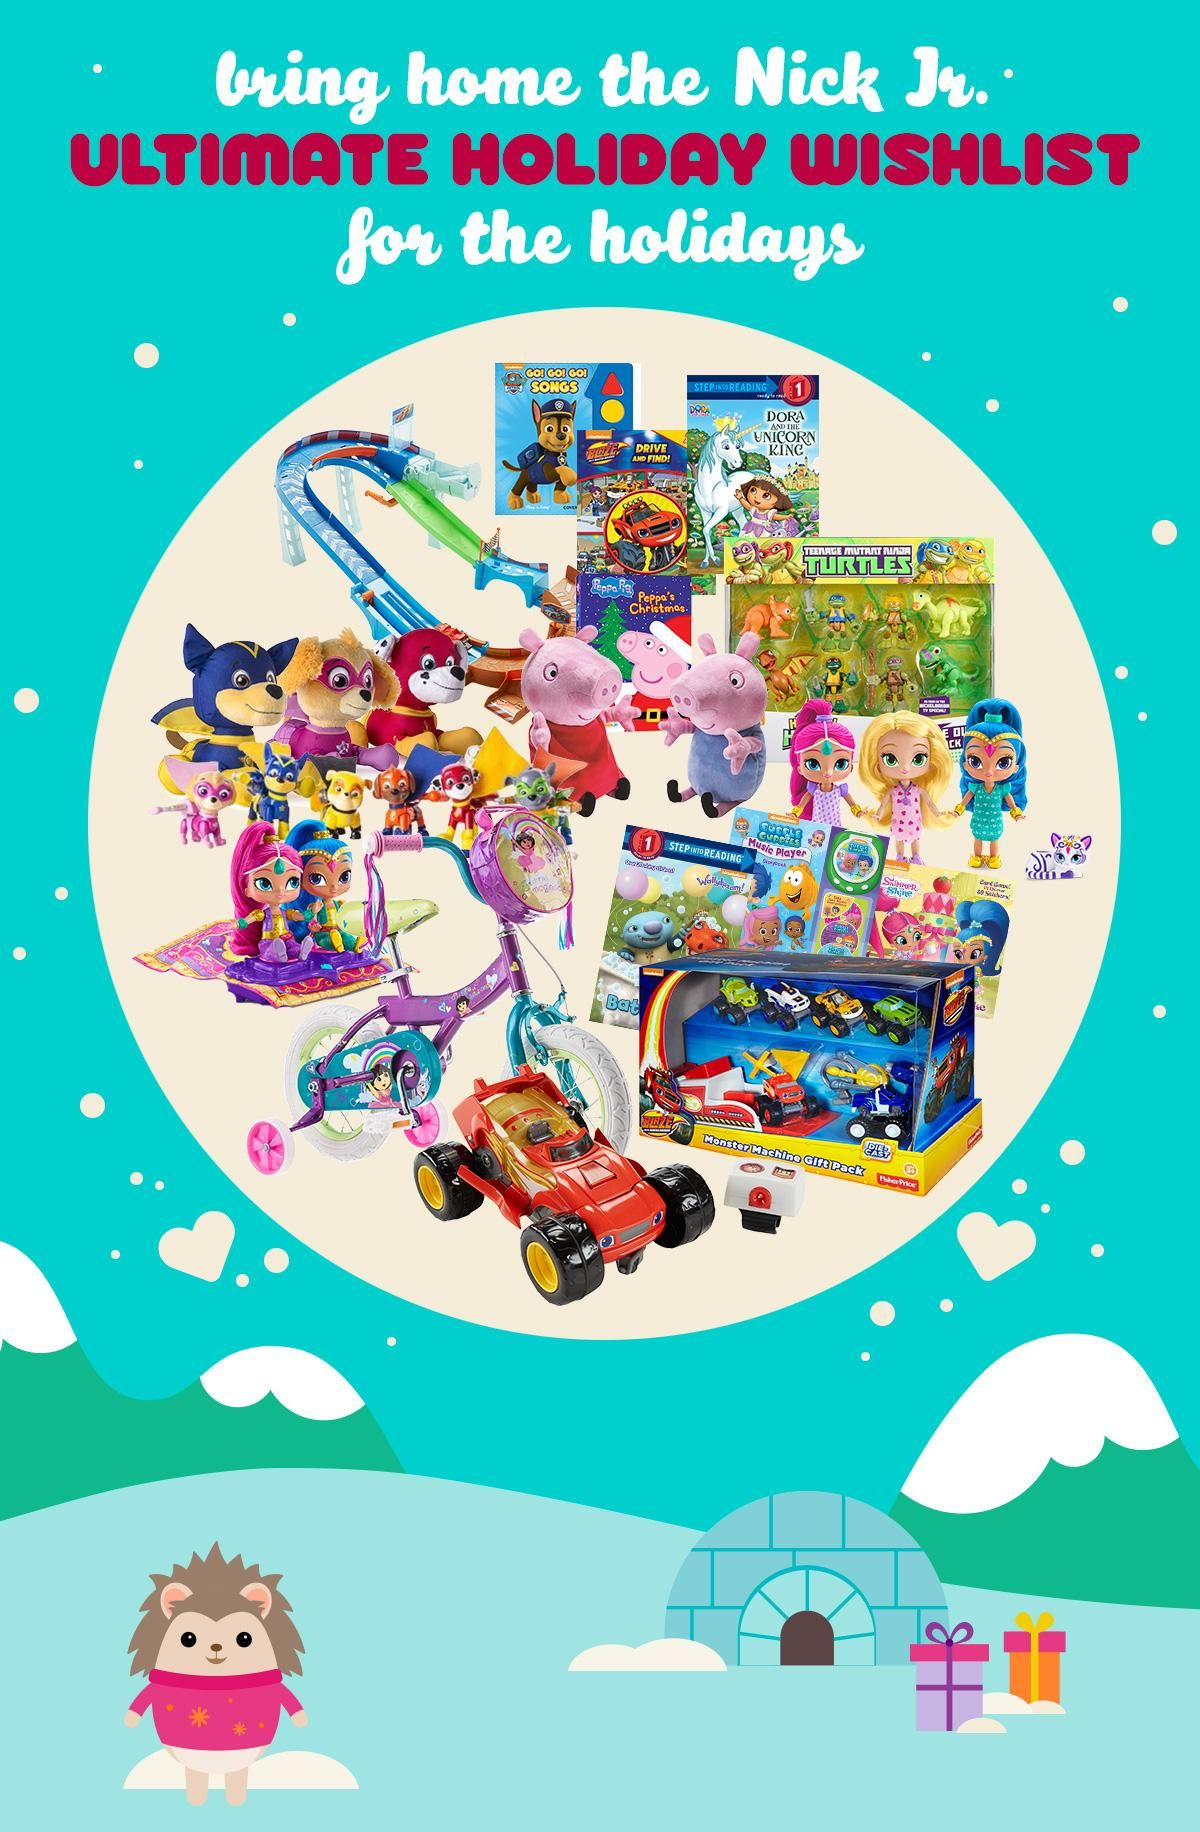 Nick Com Enter To Win : enter, Enter, Sweepstakes, Chance, Grand, Prize,, Which, Included, Patrol, Toys,, Shimmer, Wishes,, Holiday